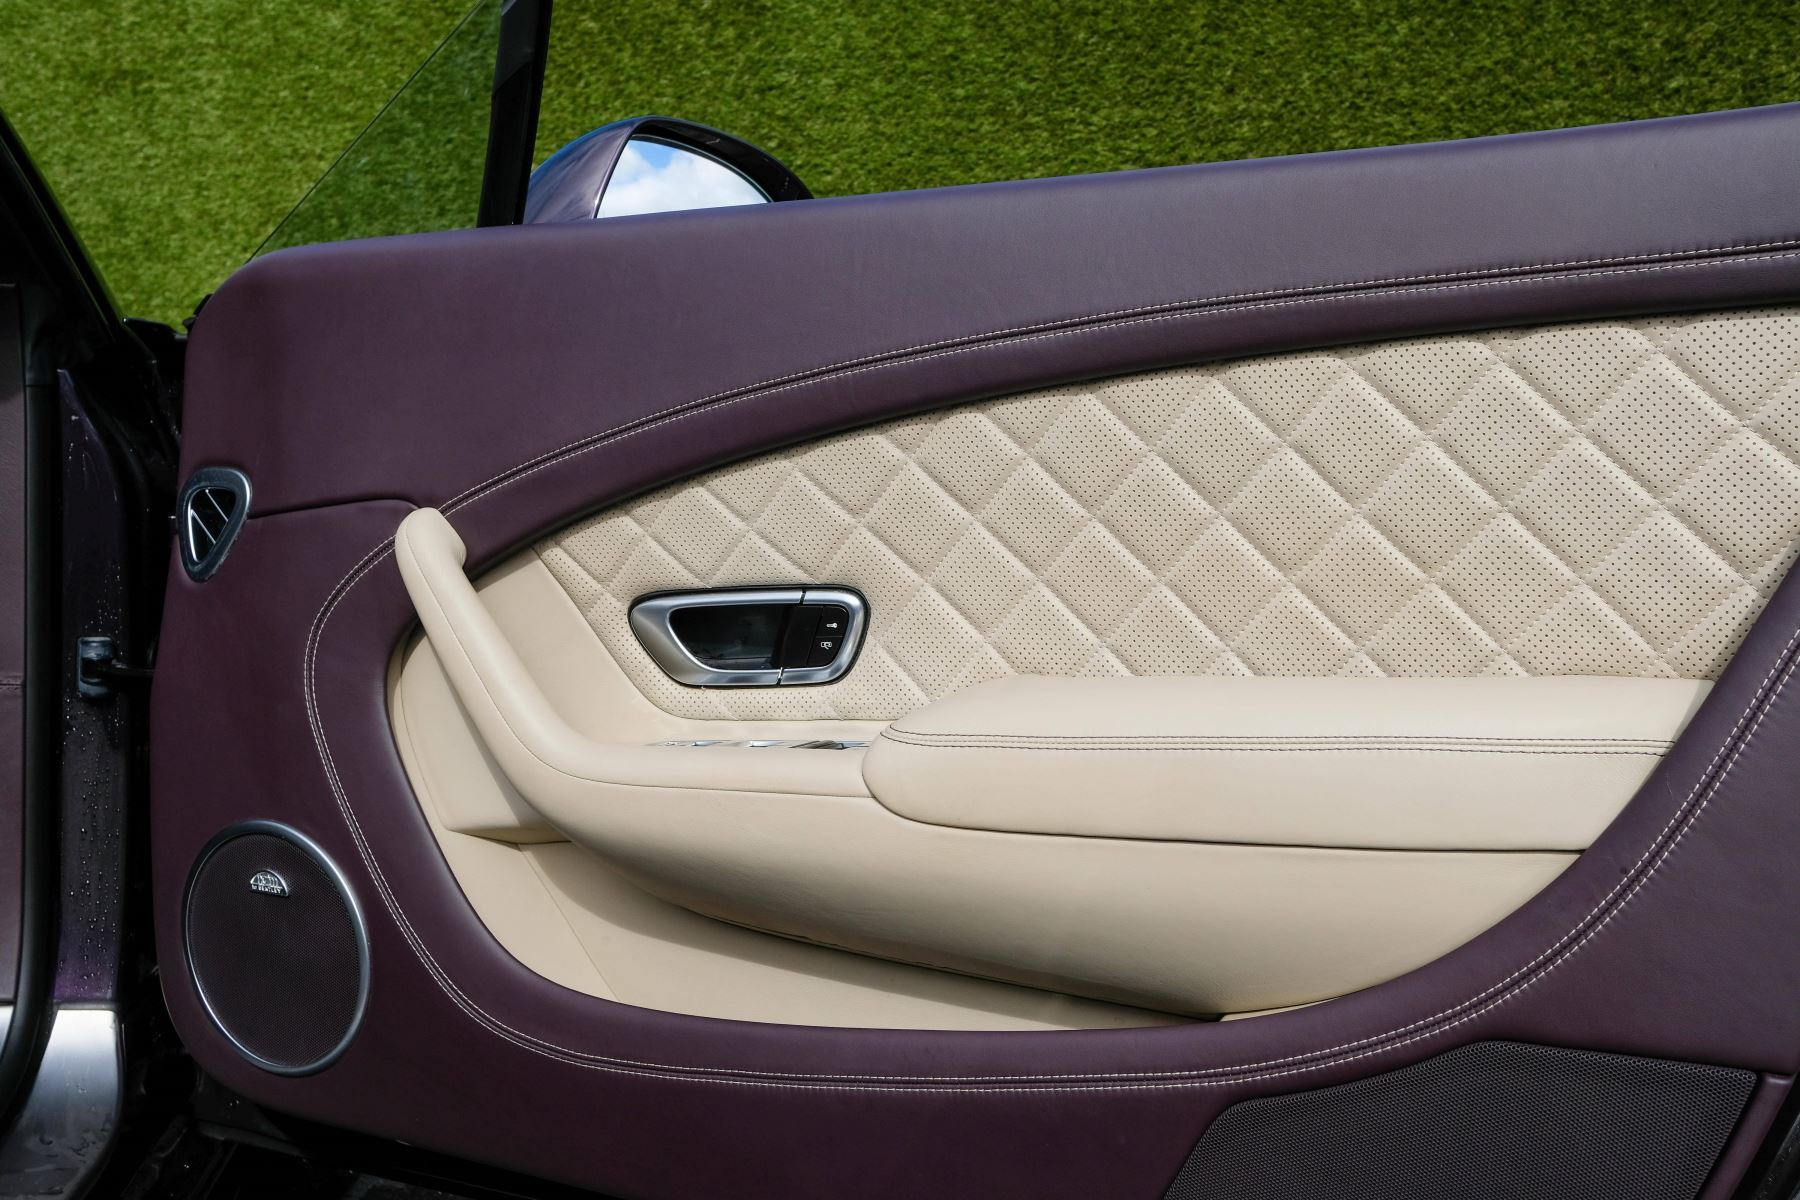 Bentley Continental GTC 4.0 V8 S Mulliner Driving Spec - Premier and All Seasons Specification image 16